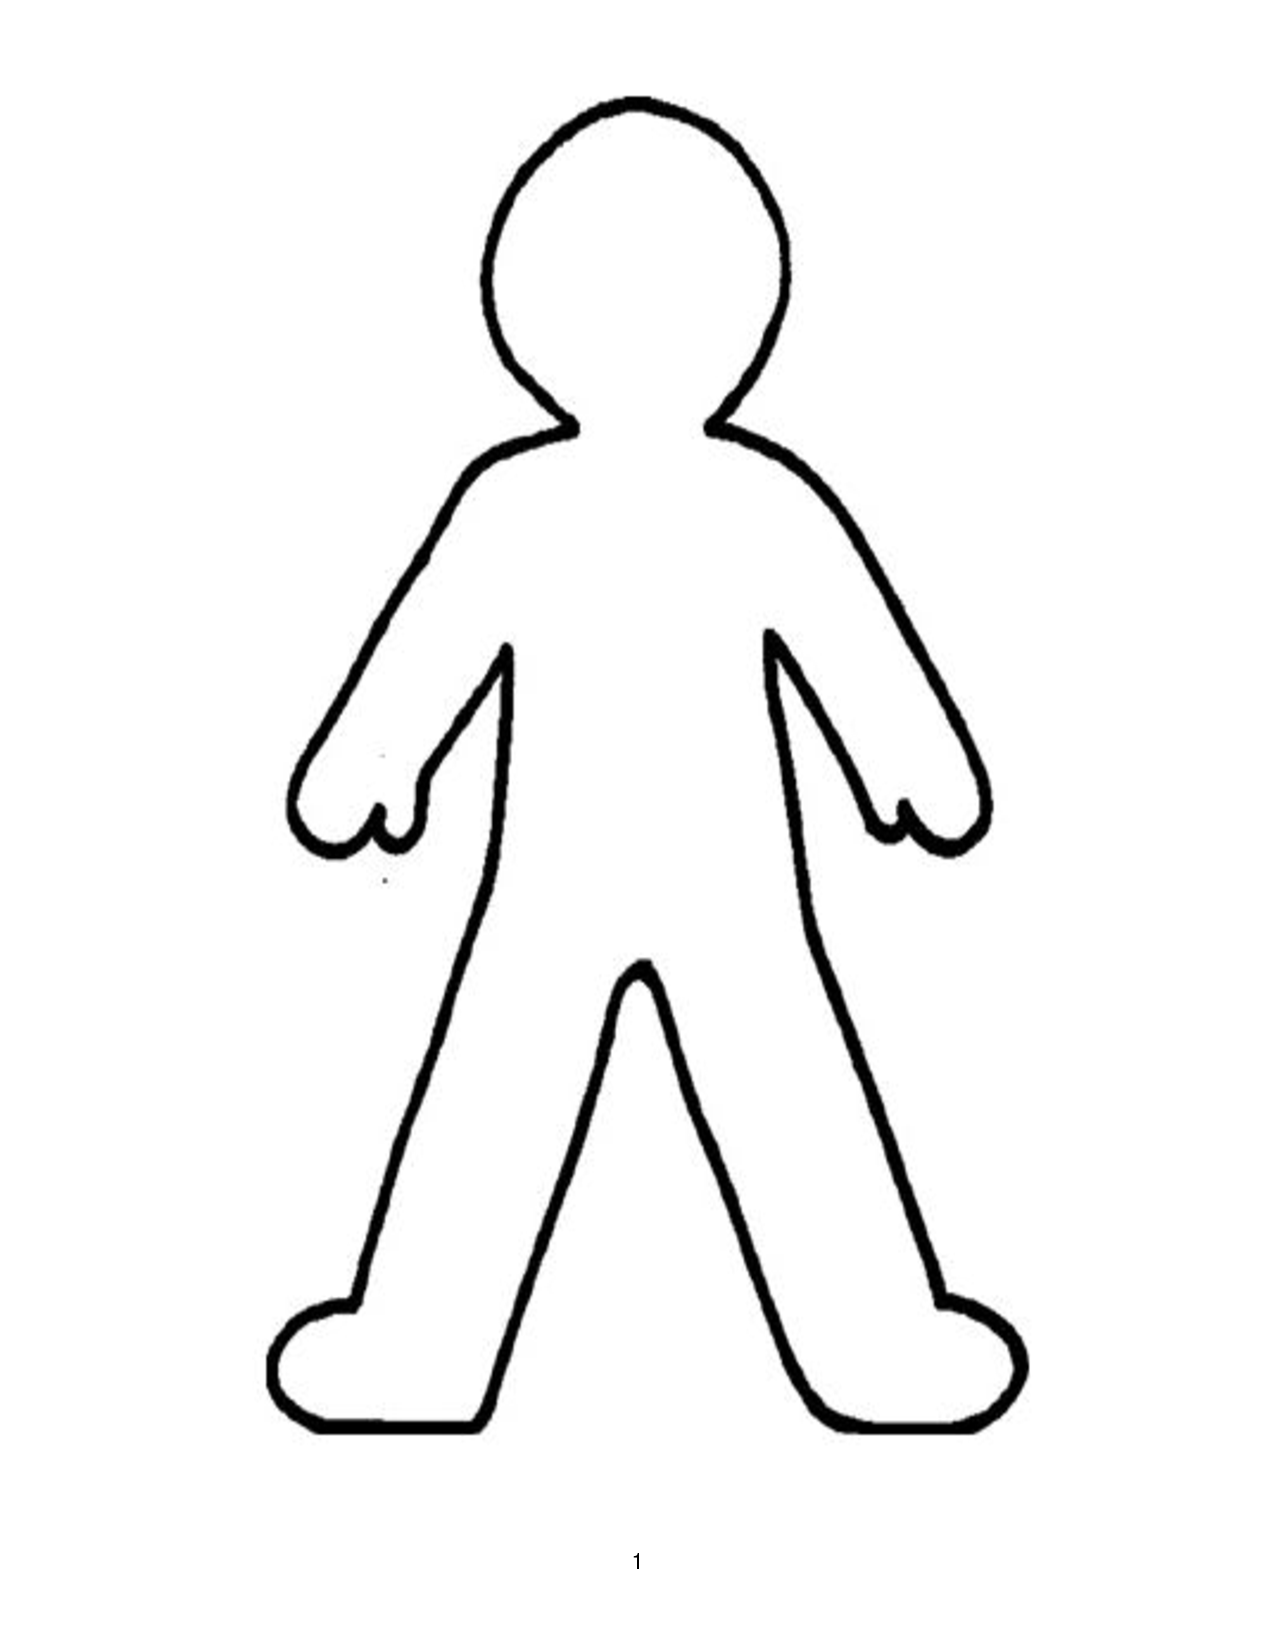 Person Outline Clipart | Clipart Panda - Free Clipart Images